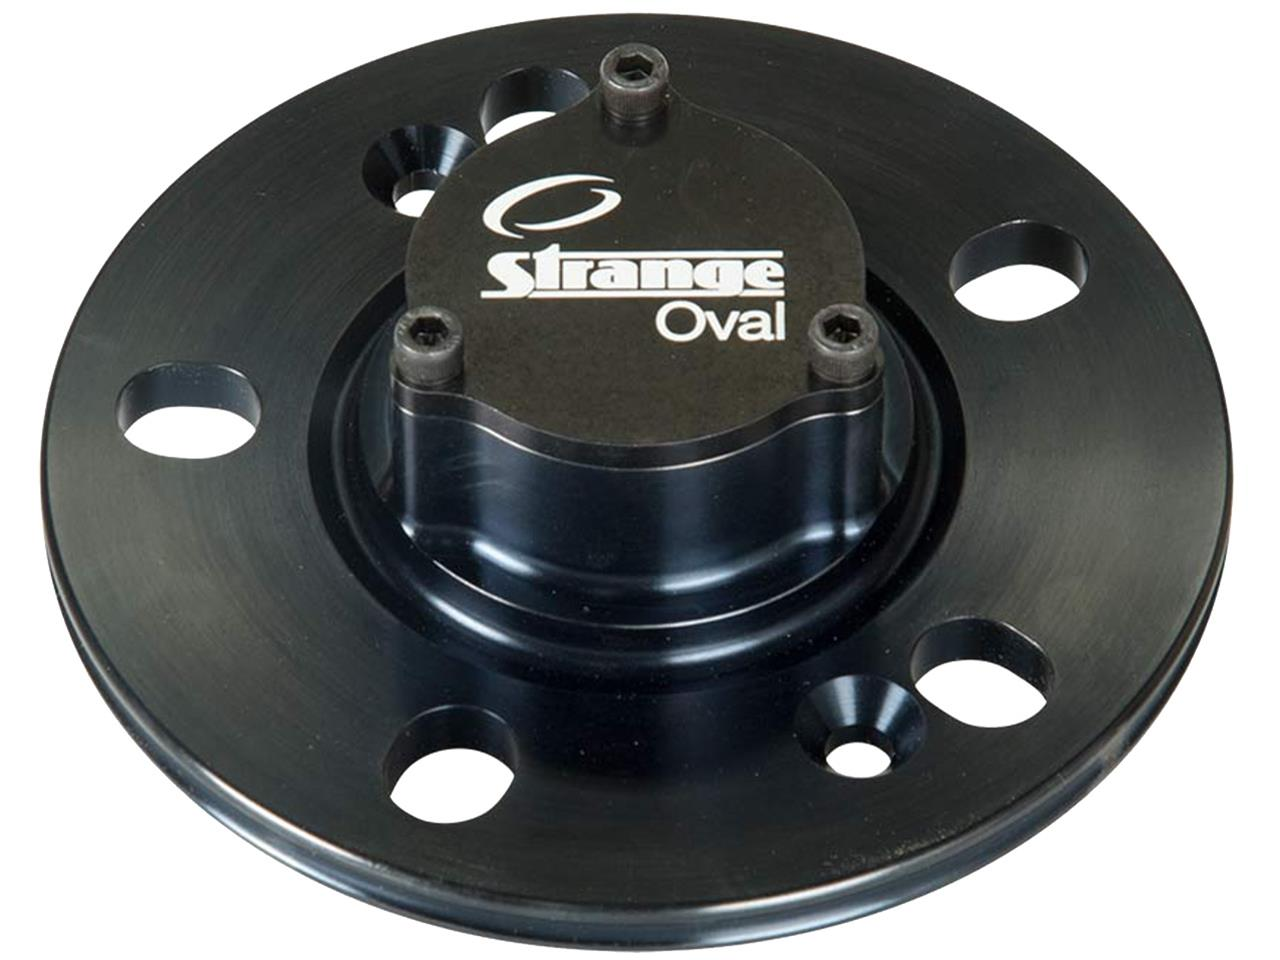 Strange Oval Aluminum GN Drive Plate with Steel Insert